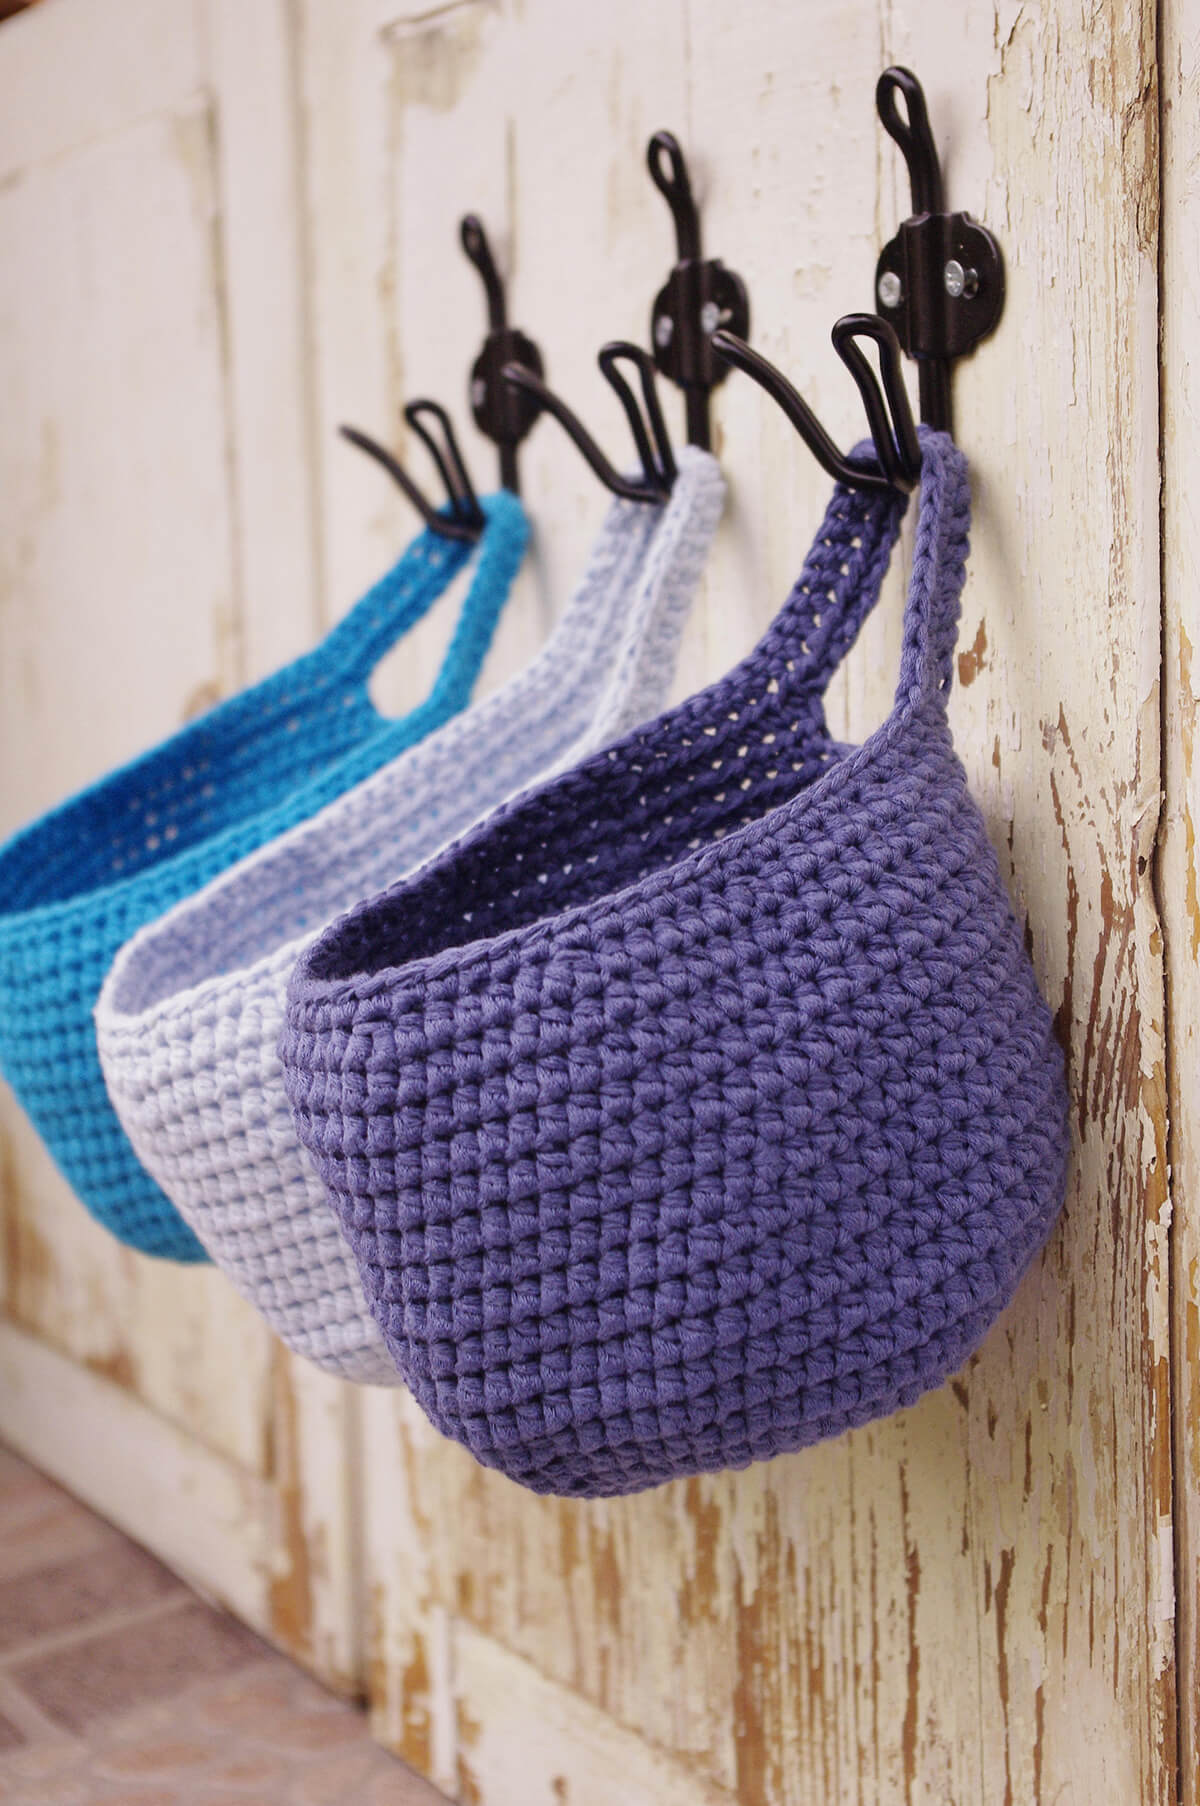 Coat Rack and Crochet Basket